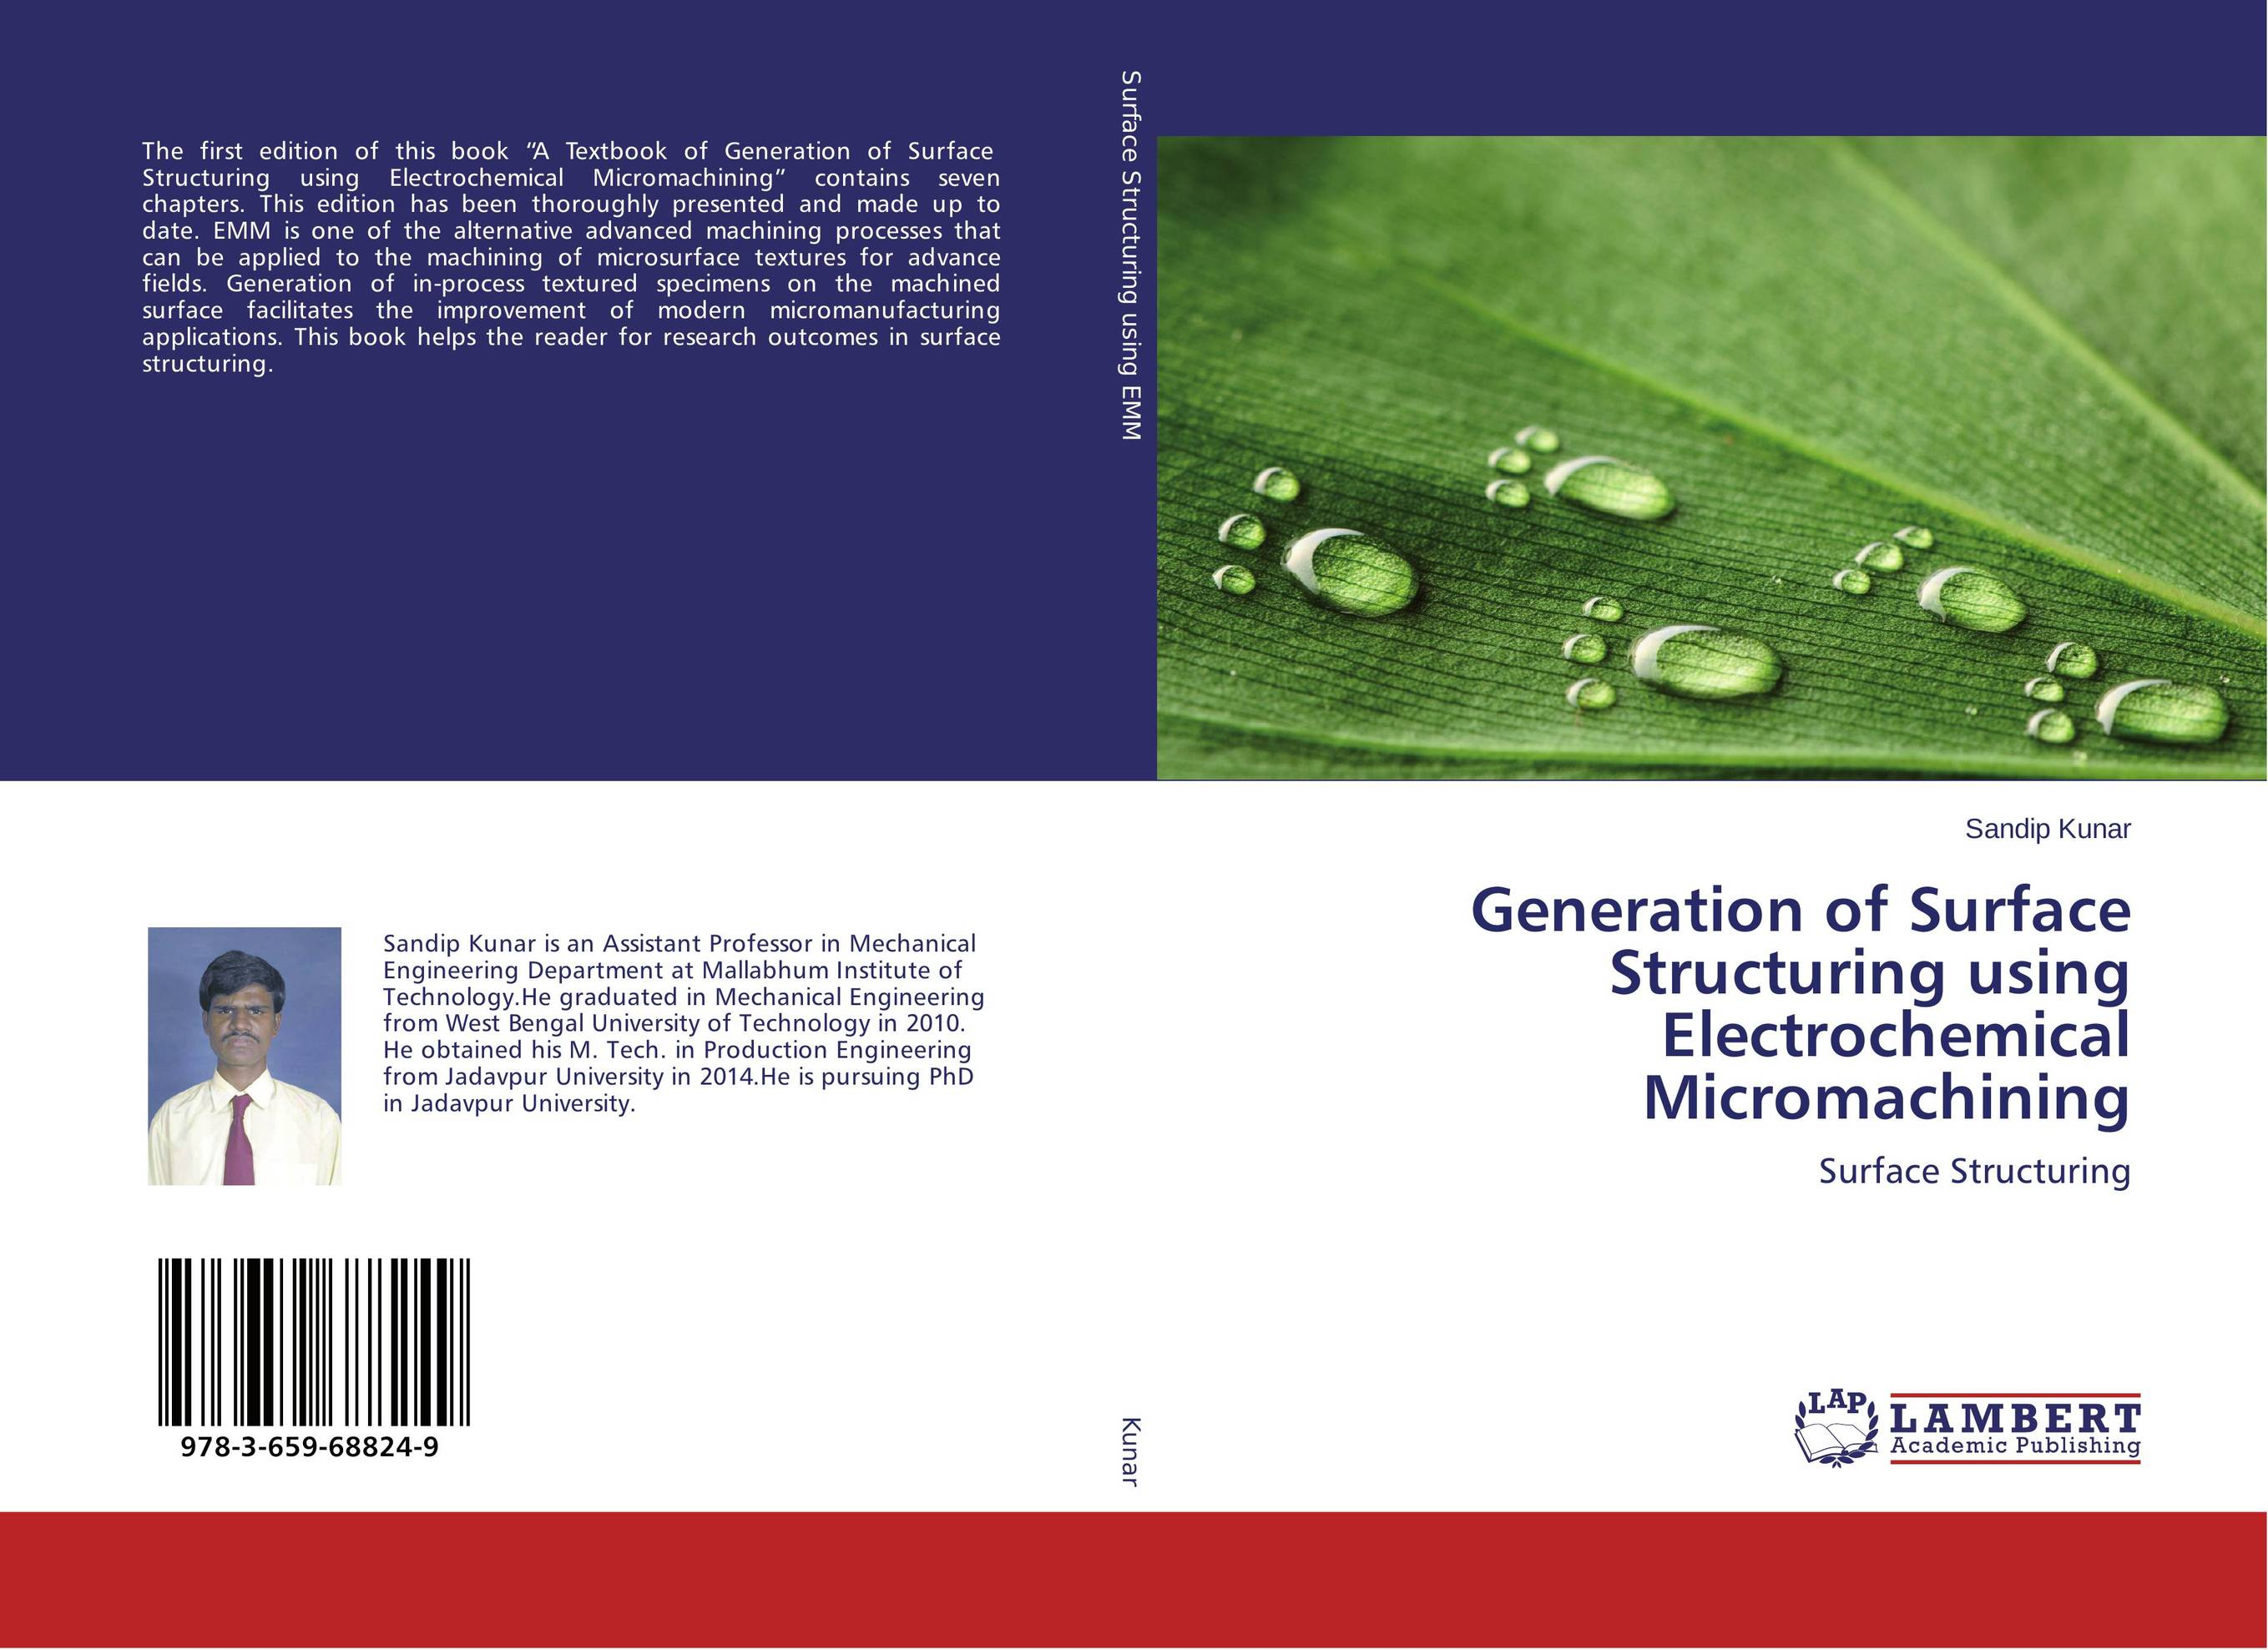 Generation of Surface Structuring using Electrochemical Micromachining petar piljek zdenka keran and ante ninic micromachining